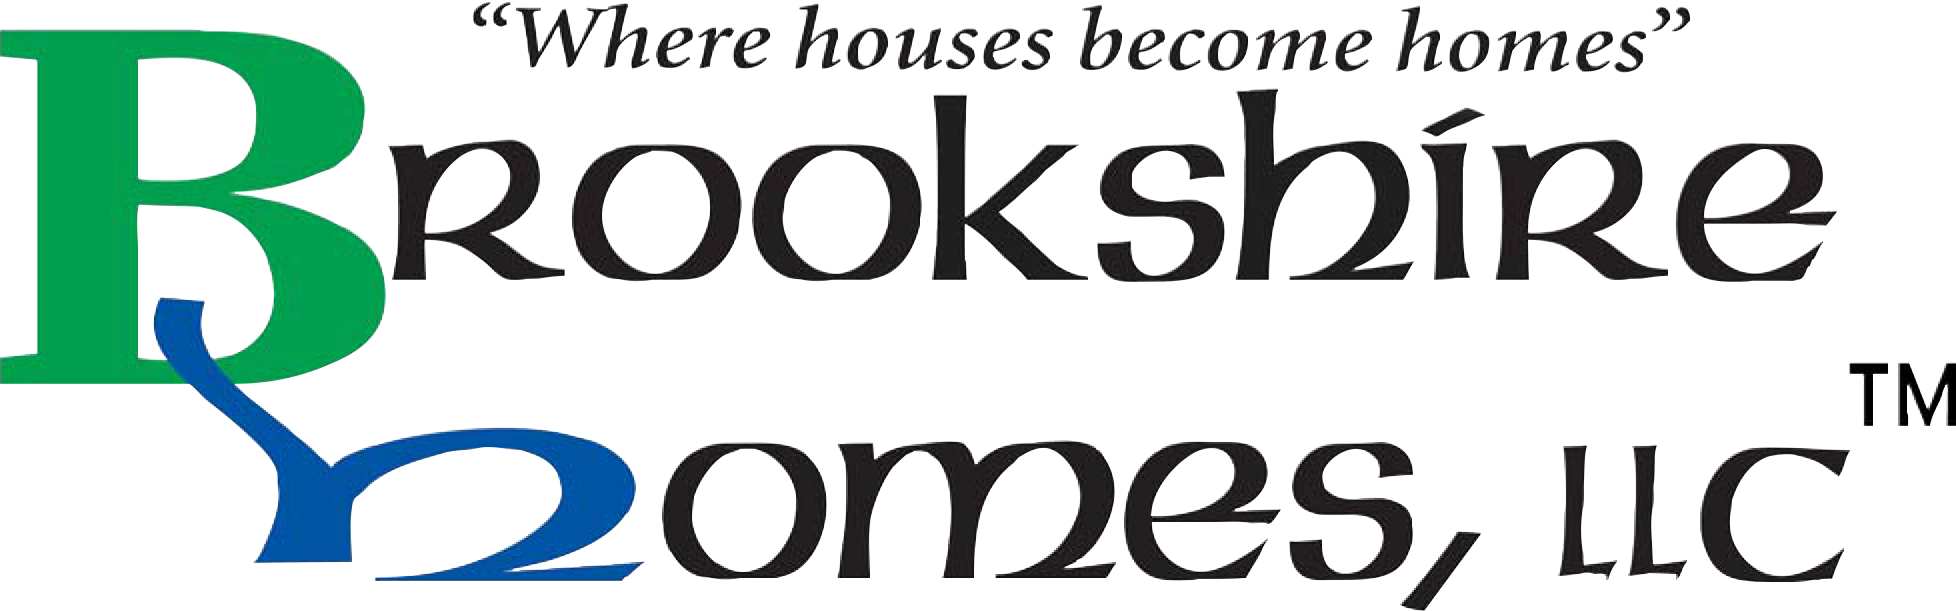 9-16-20-Logo-4C_0300_BROOKSHIRE_HOMES_NEWeps[1]